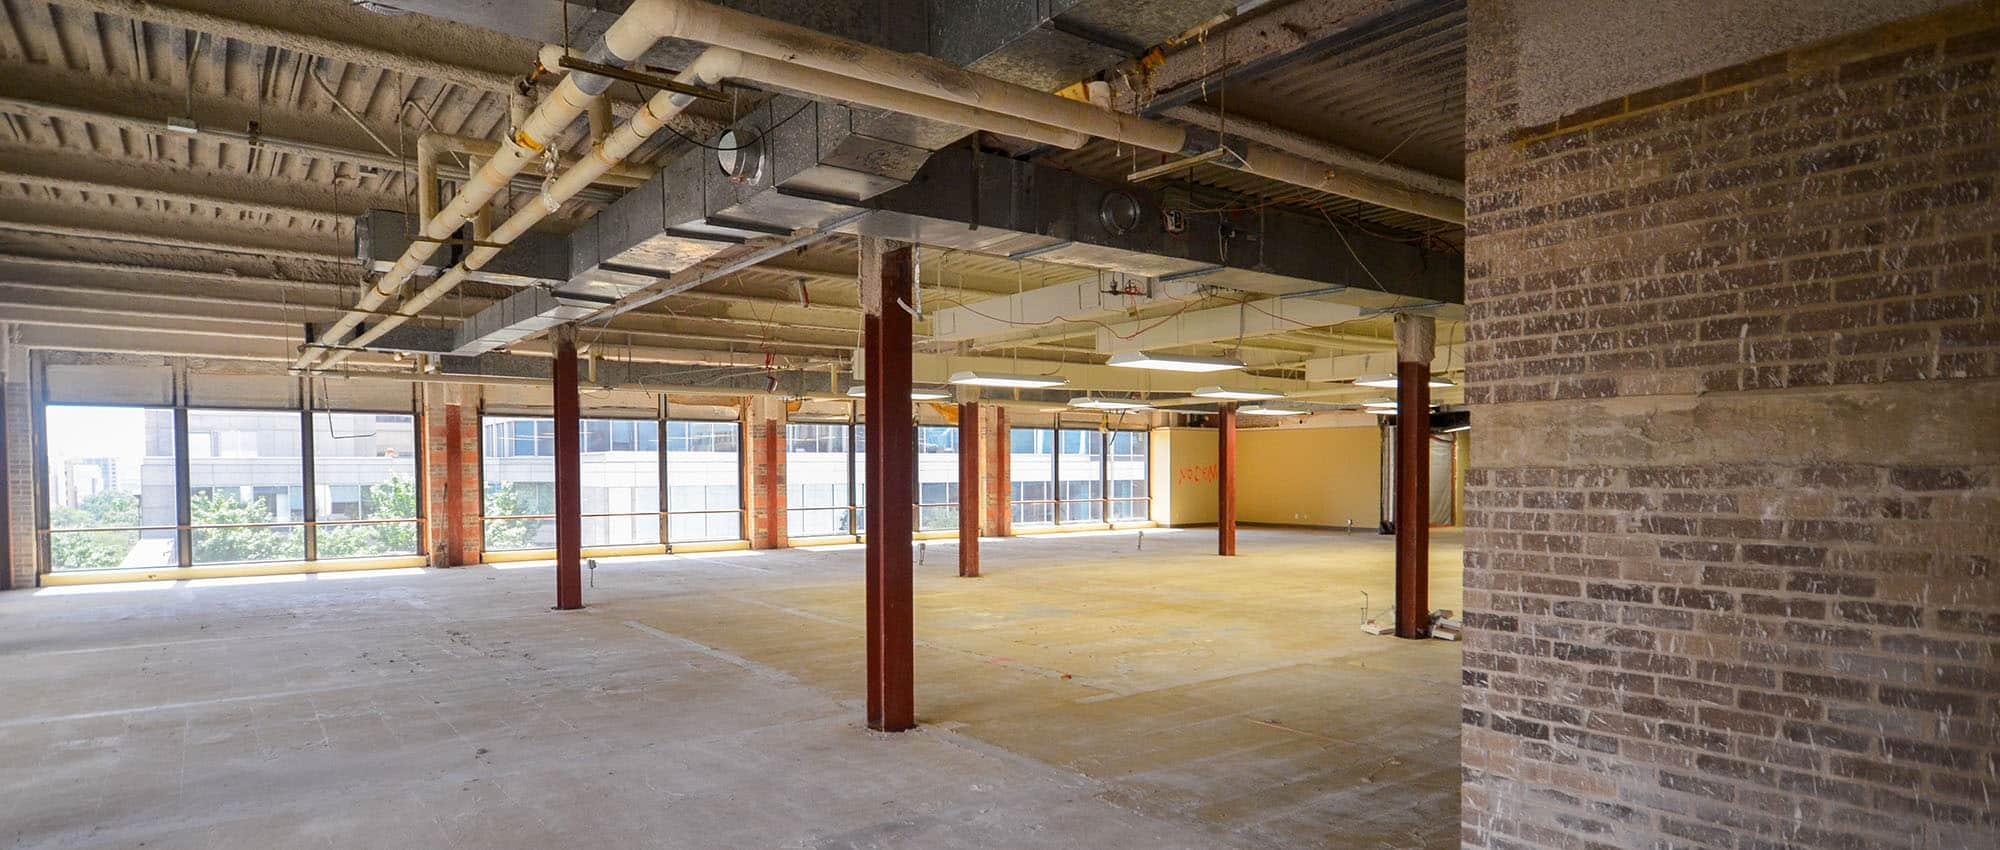 Shell Office Space in Austin Texas | Office Build Out or Renovation